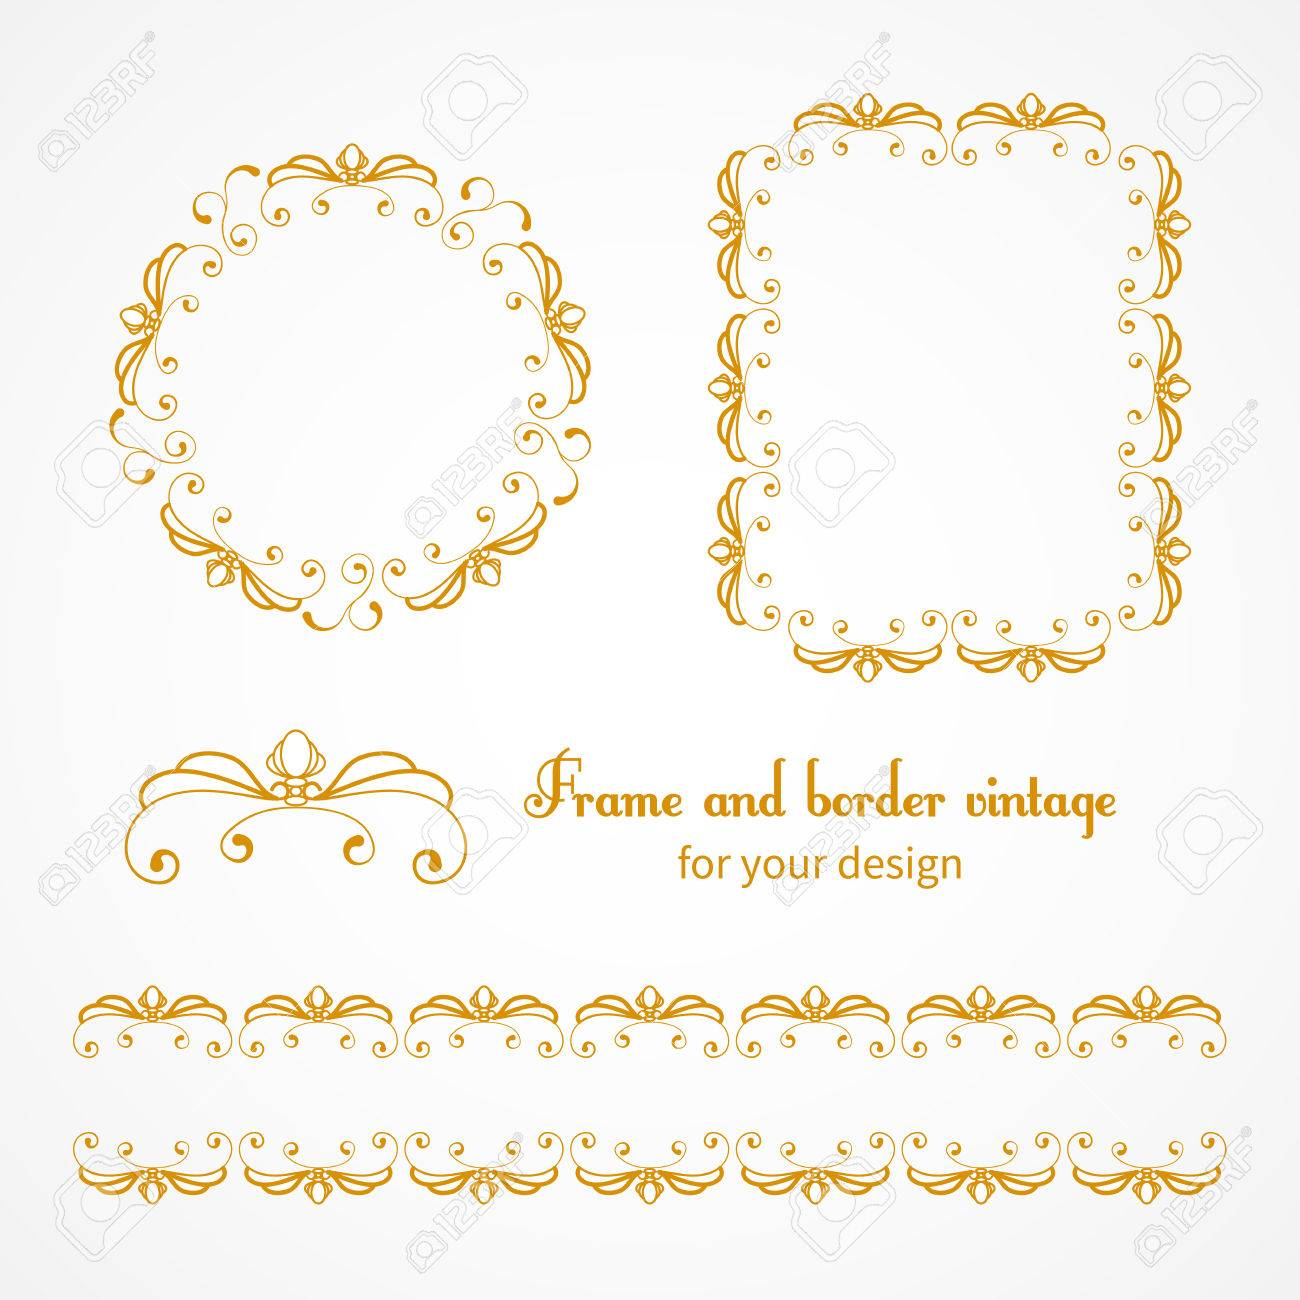 borders for invitations birthday ; 41835113-set-of-vintage-frames-and-borders-with-vignettes-in-victorian-style-ornate-element-for-design-orname